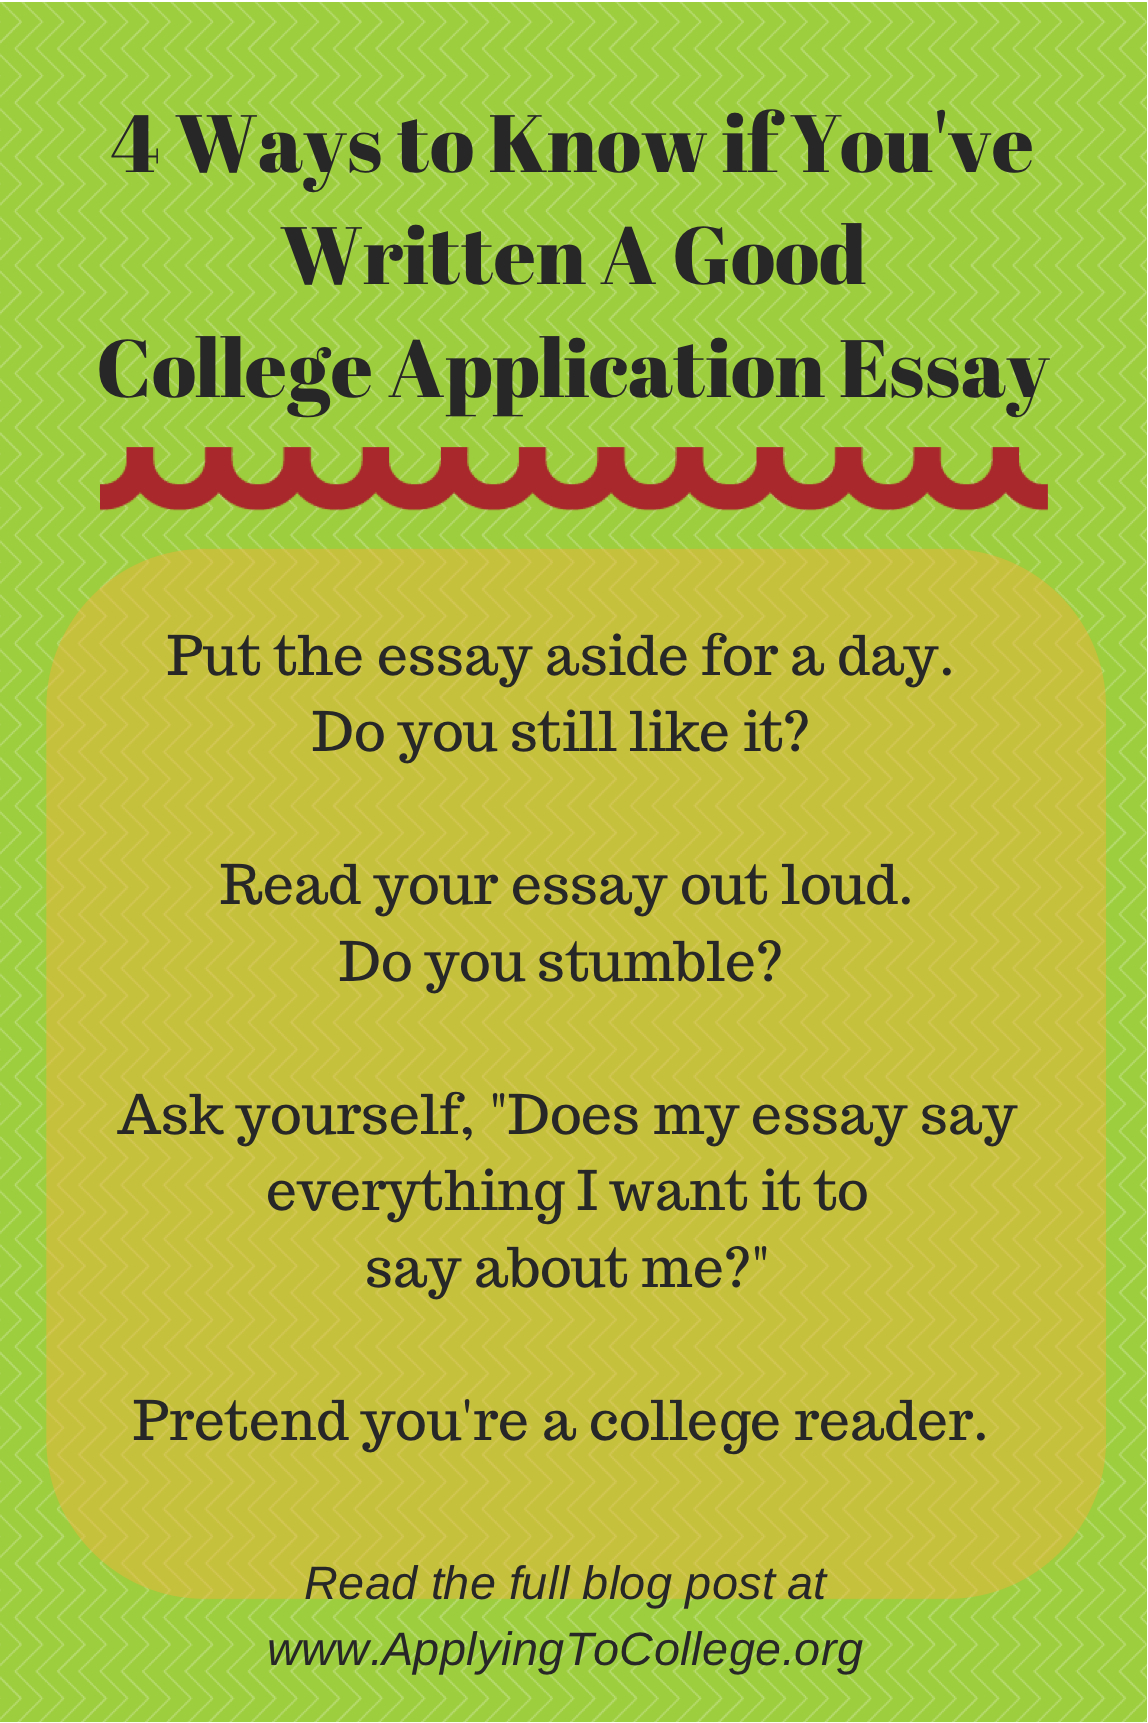 Essay For Upsc Mains 2015 Gmc